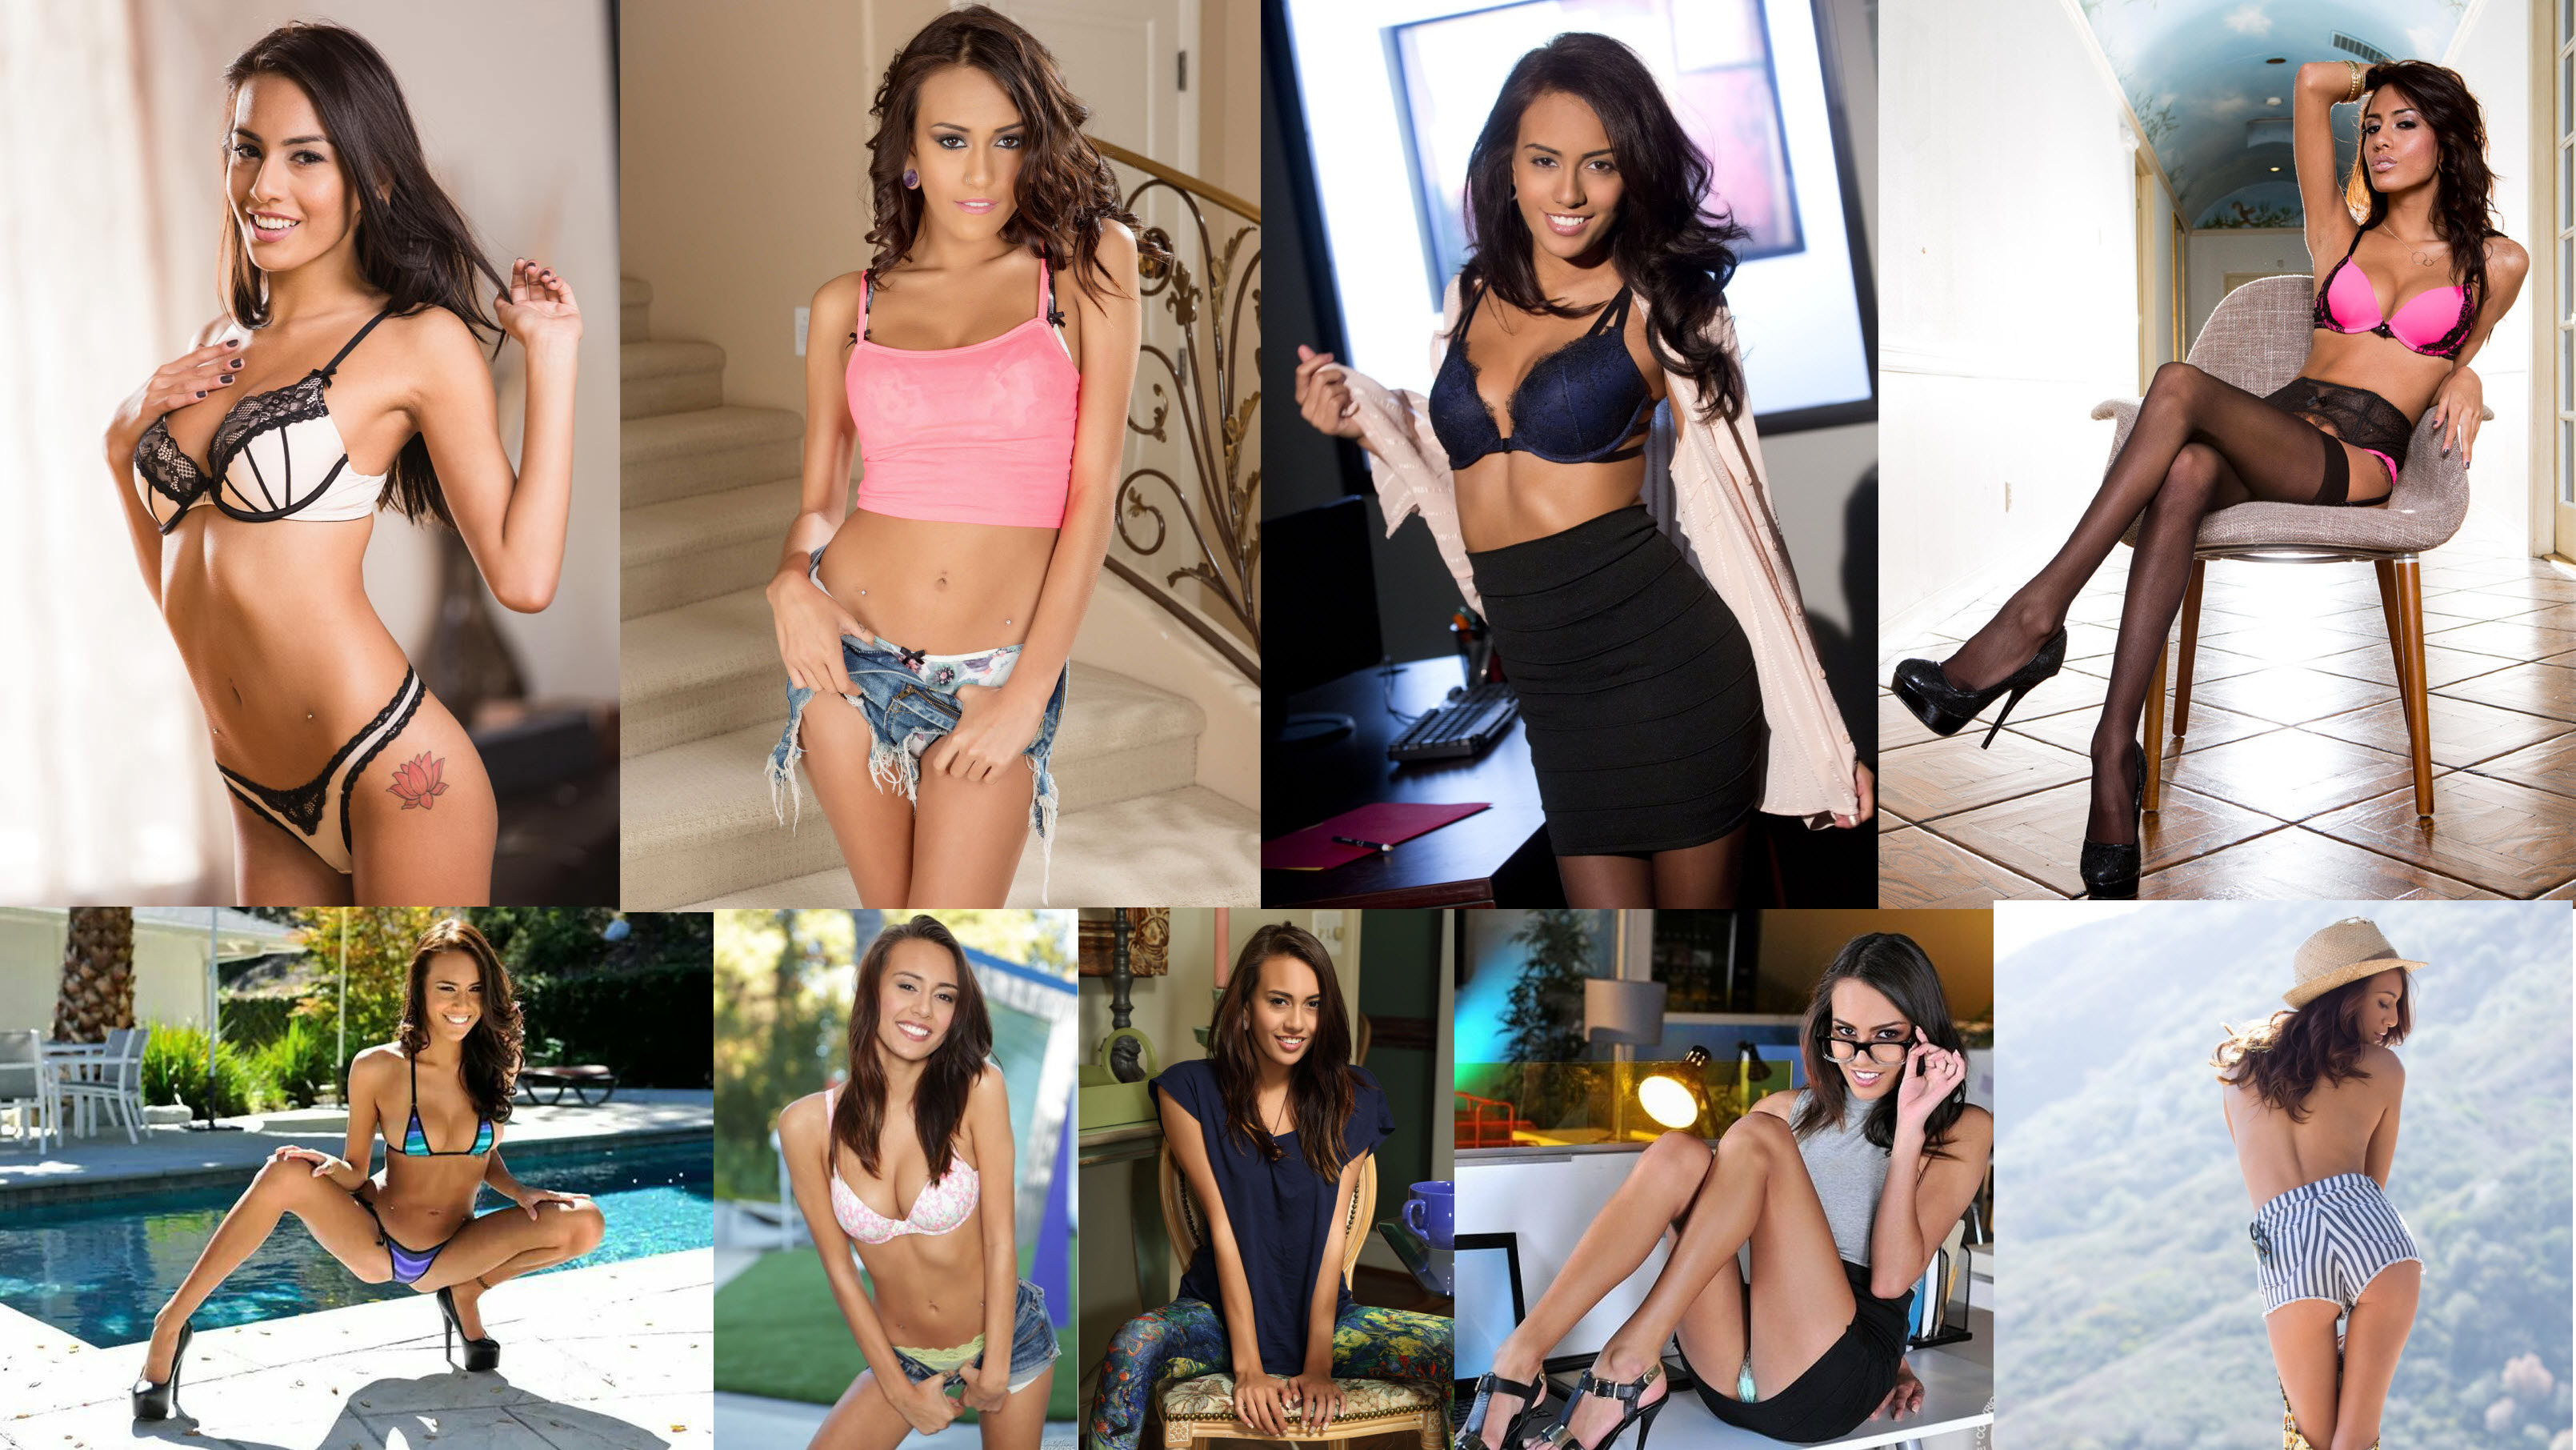 Janice Griffith younger photo one at theworldaccordingtozah.com